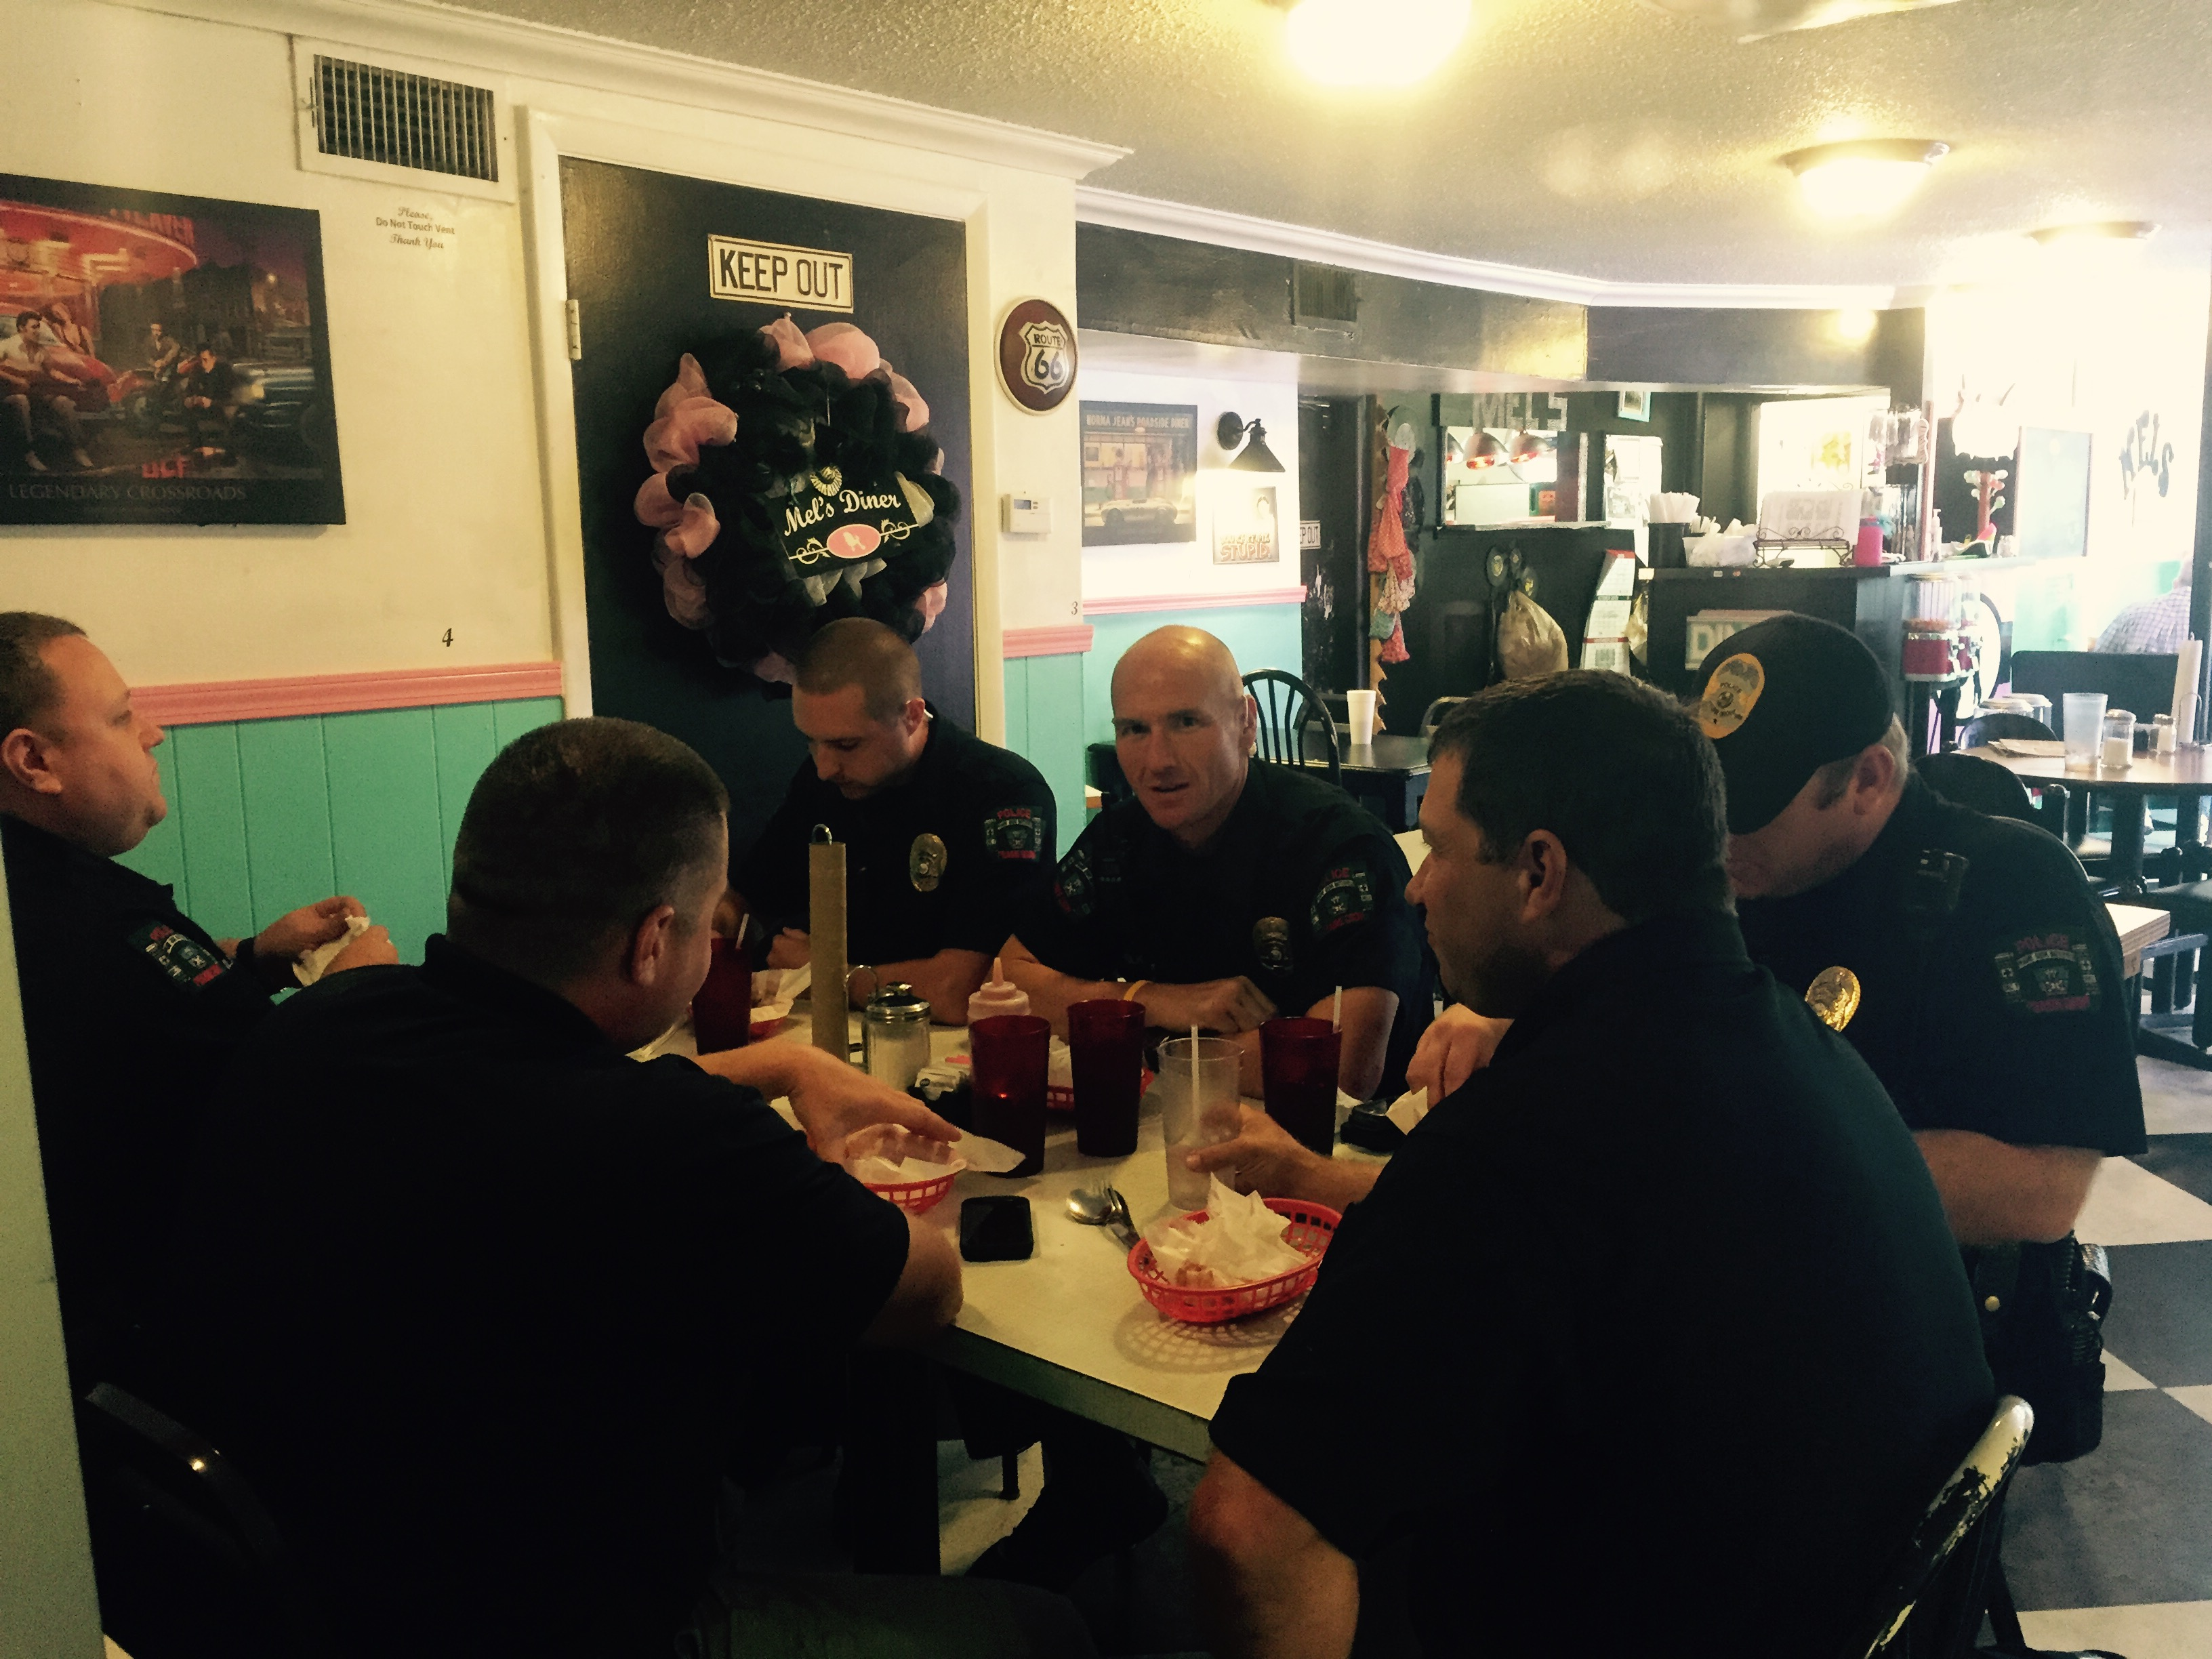 Mel's Diner in Prairie Grove treated first responders and active-military members to free lunch to honor the first responders who rushed in to help on 9/11.